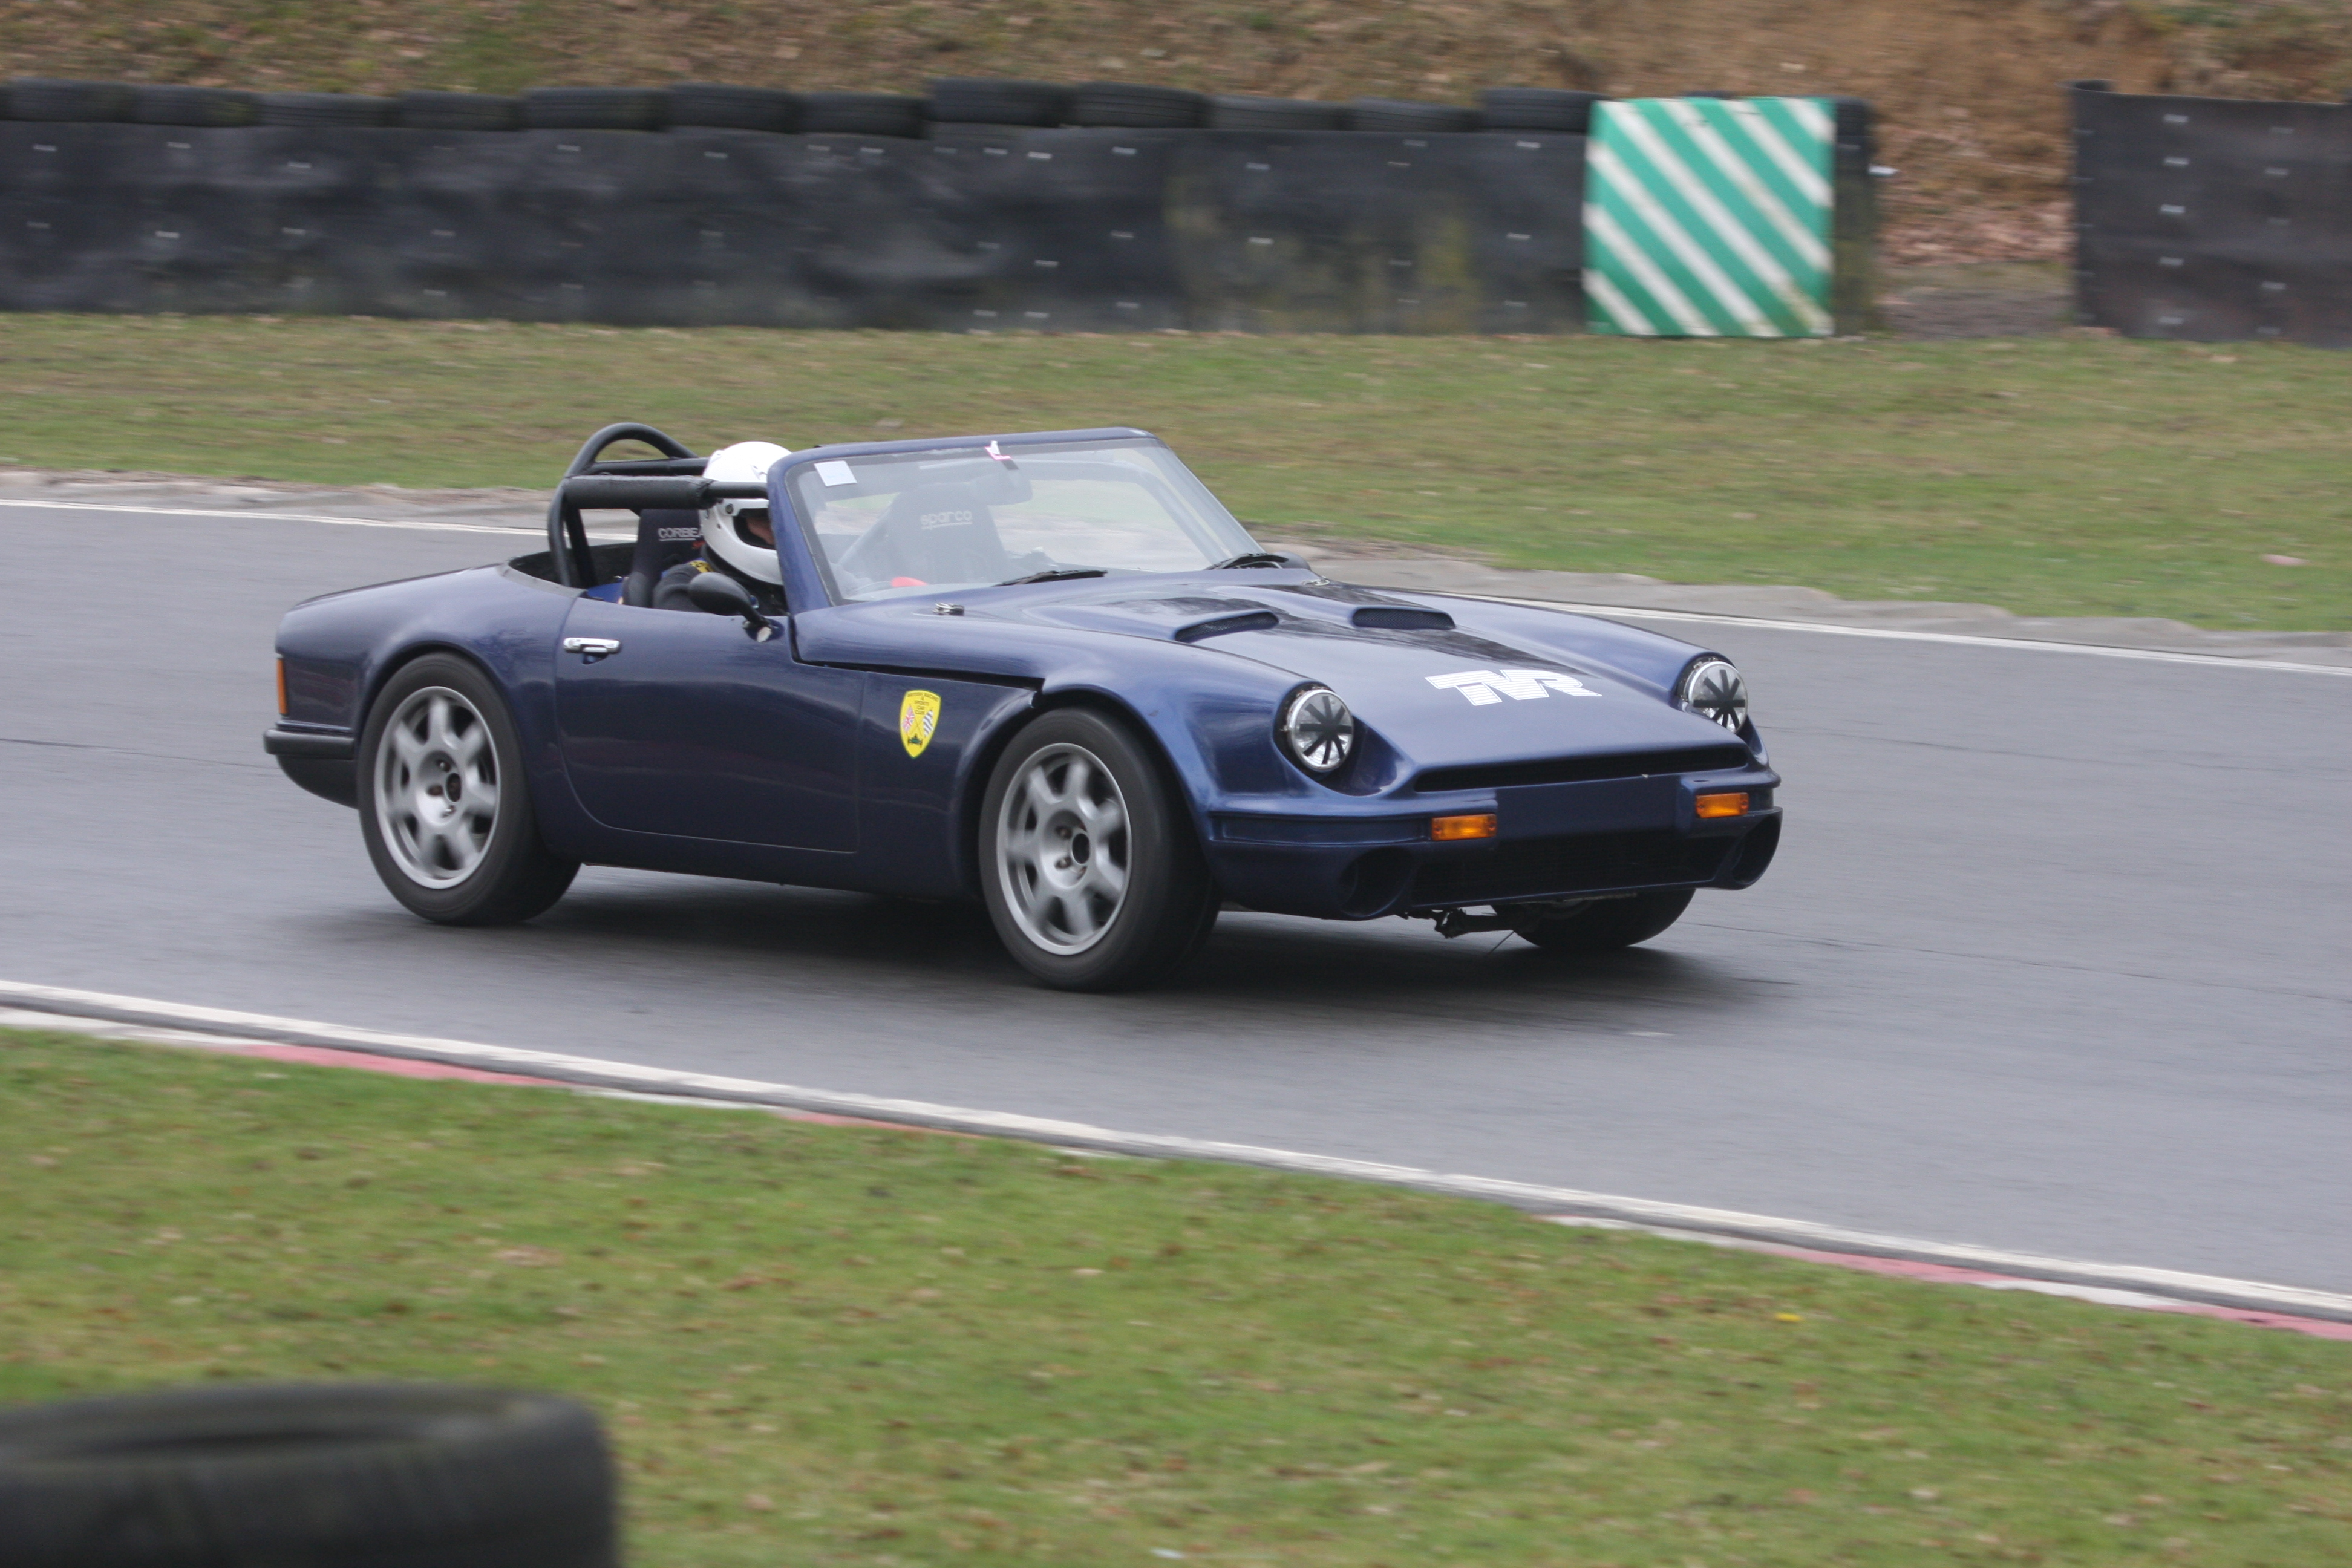 TVR S-series: 03 фото